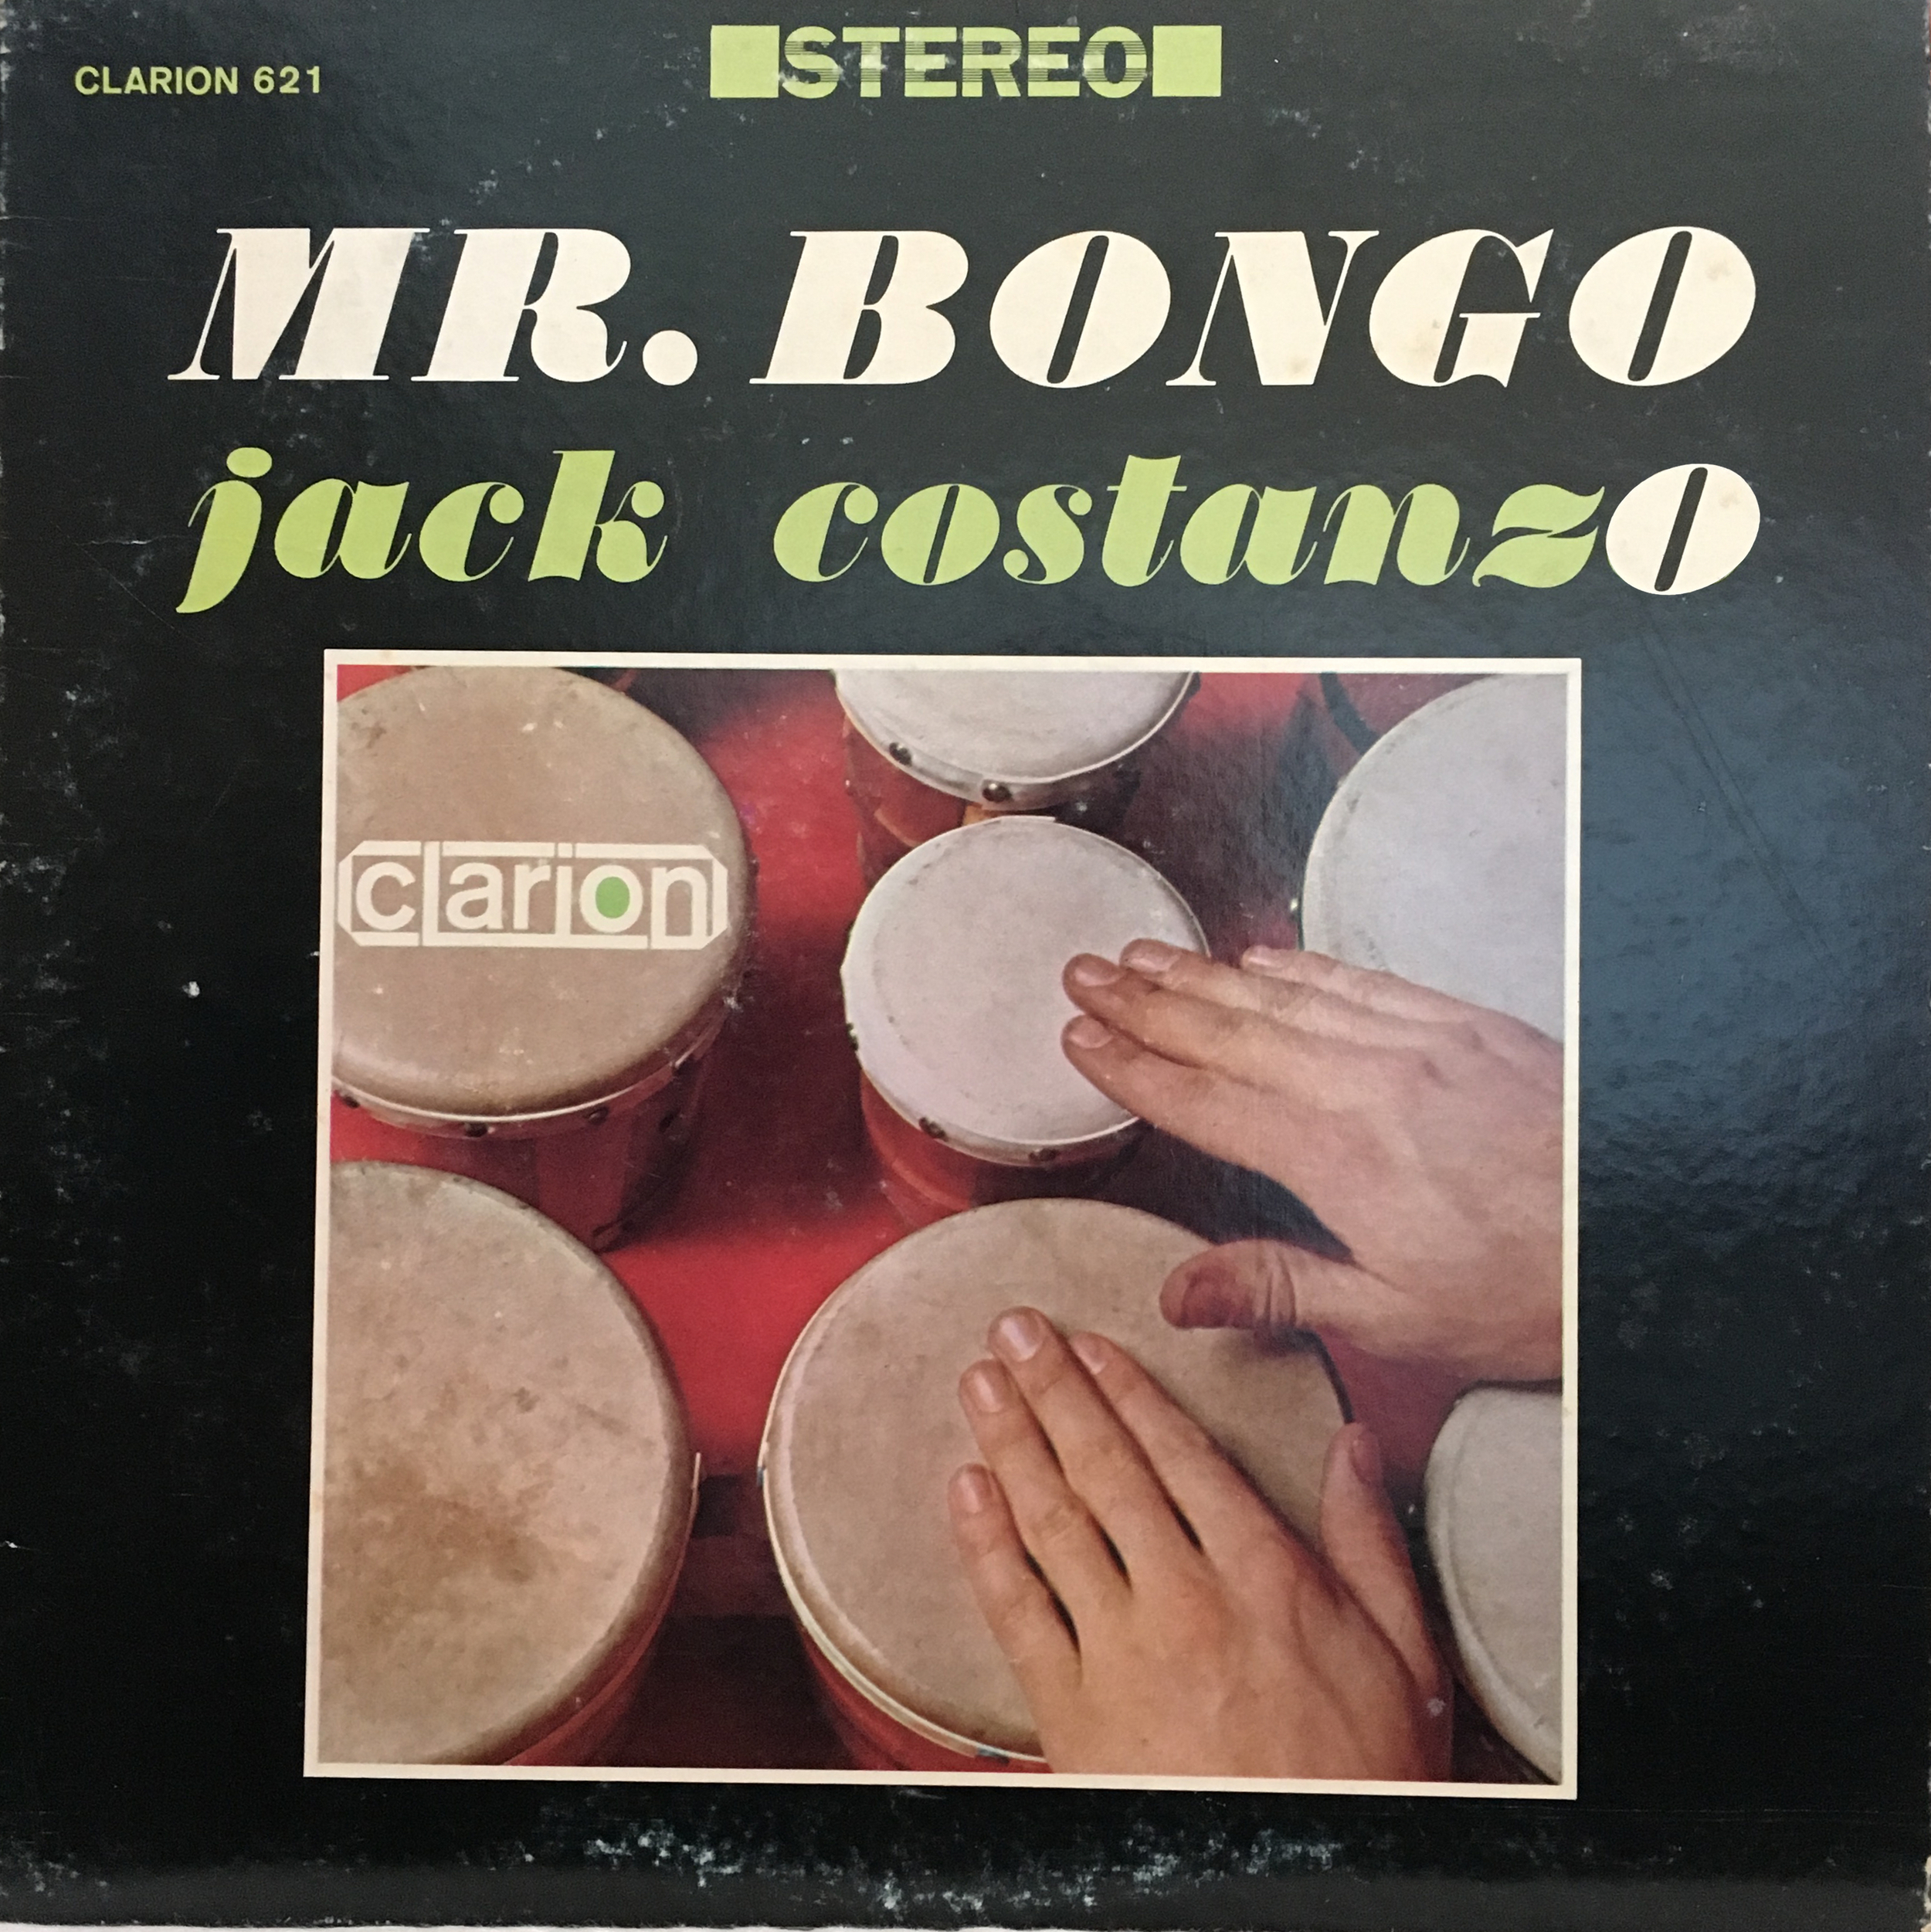 Mr. Bongo by Jack CostanzO. I fixed it for you, Clarion.